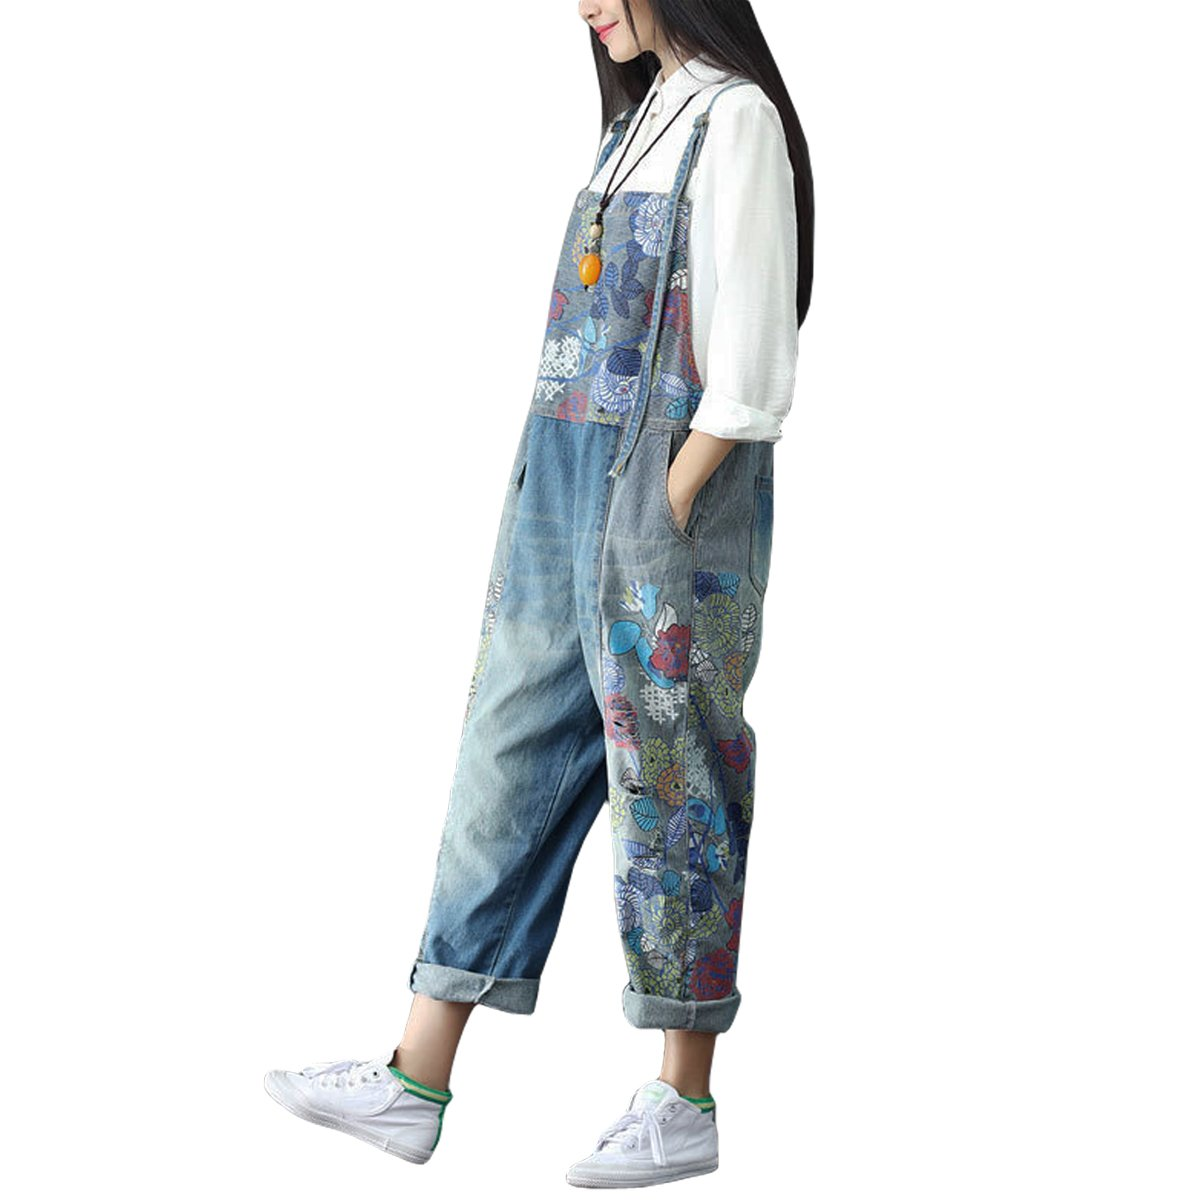 e2b8da47c9 Sidiou Group Women s Casual Printed Baggy Trousers Wide Leg Dungarees  Cotton Romper Jumpsuit Playsuit (One Size